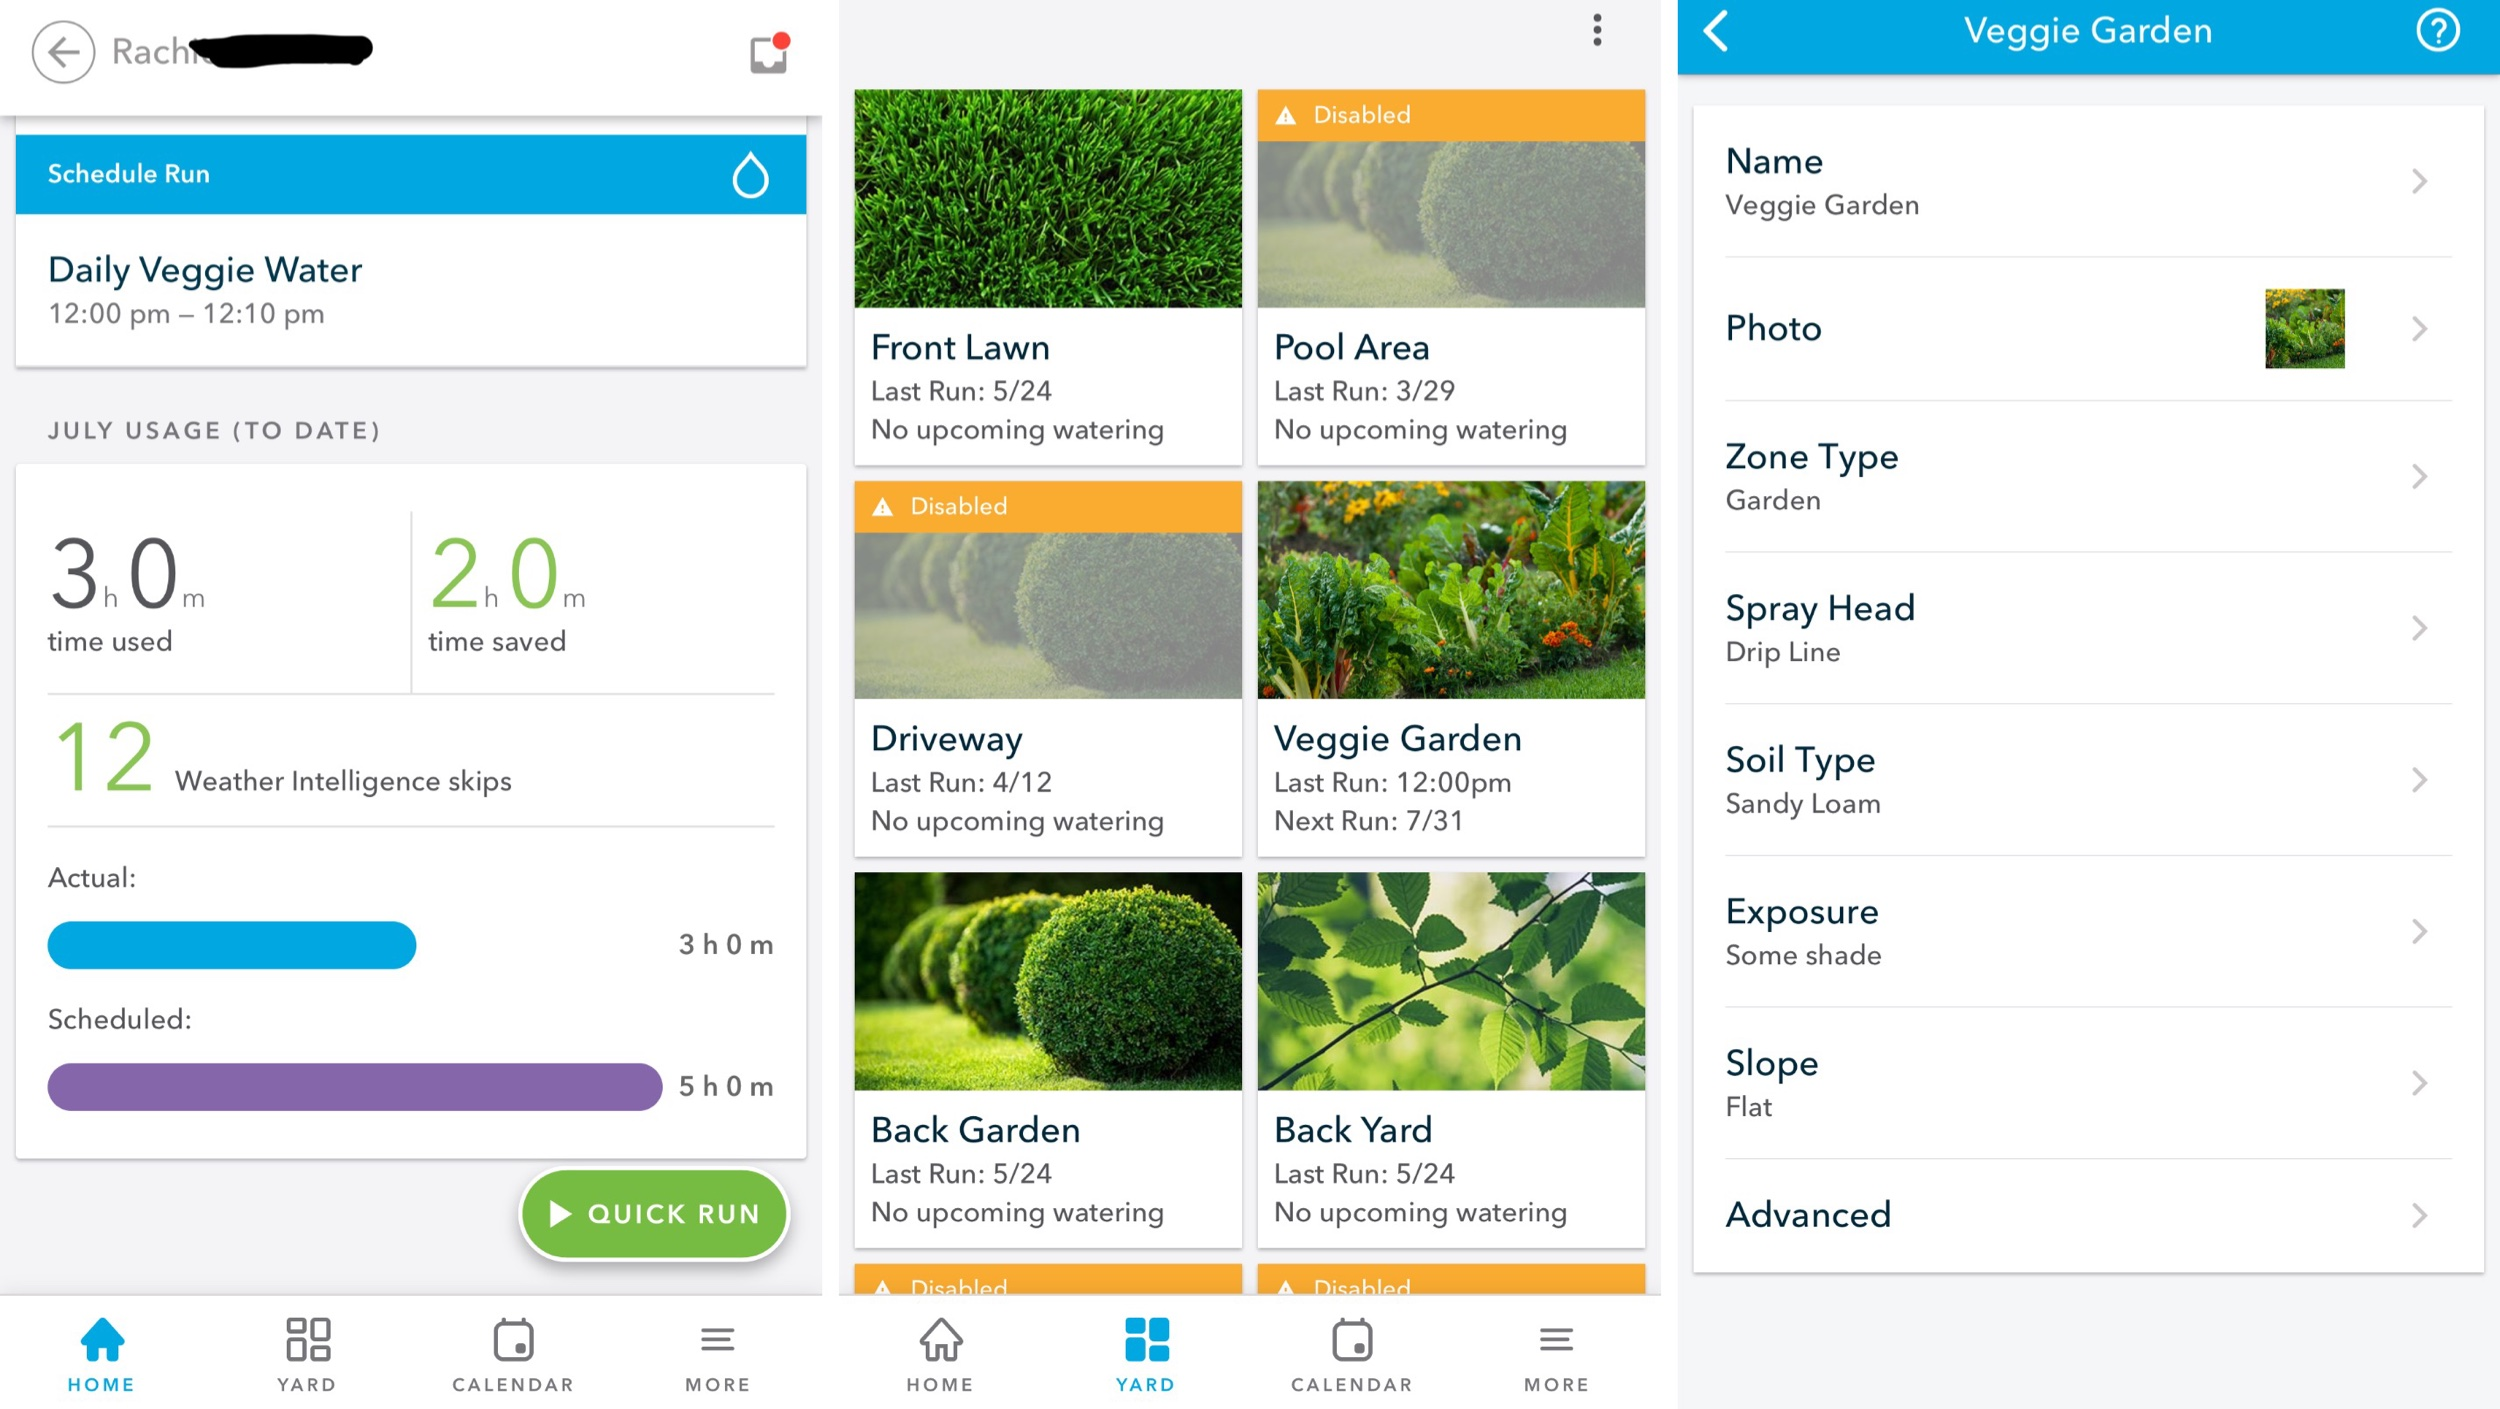 The Rachio App - Home, Yard, and Zone Settings pages